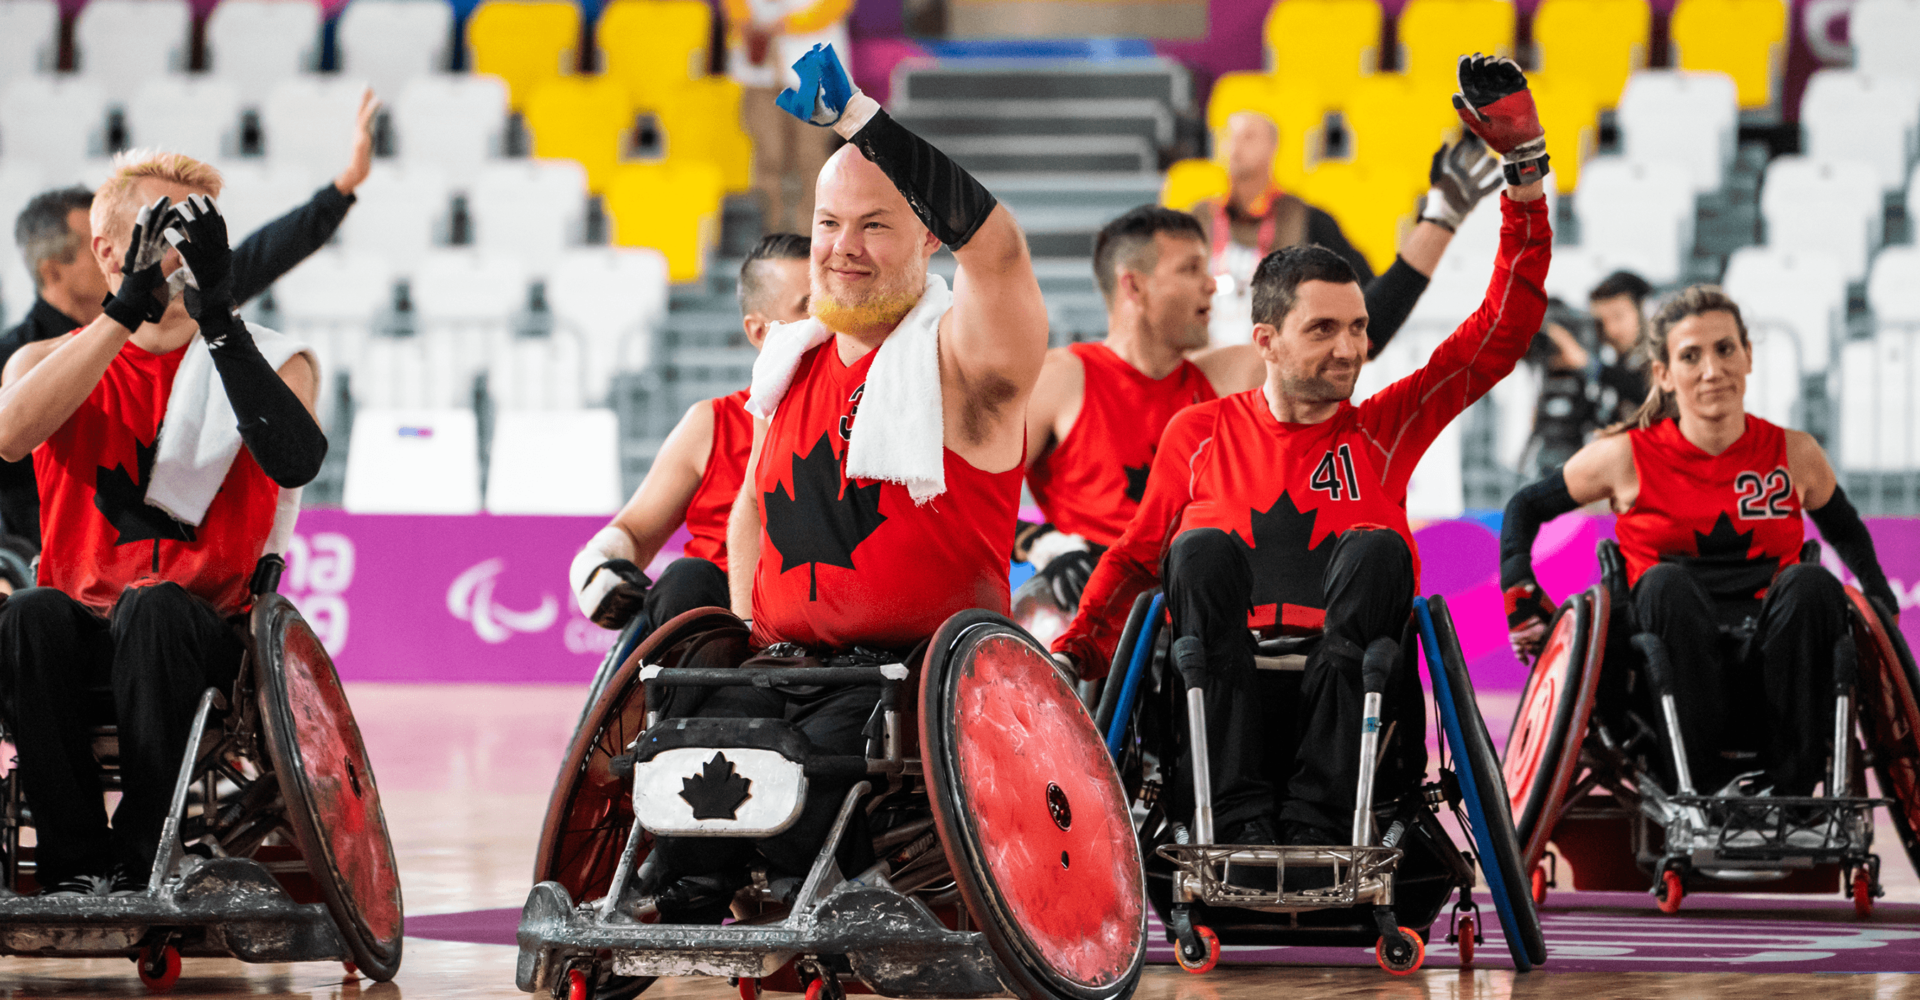 CANADA'S WHEELCHAIR RUGBY TEAM OFF TO A WINNING START AT LIMA 2019